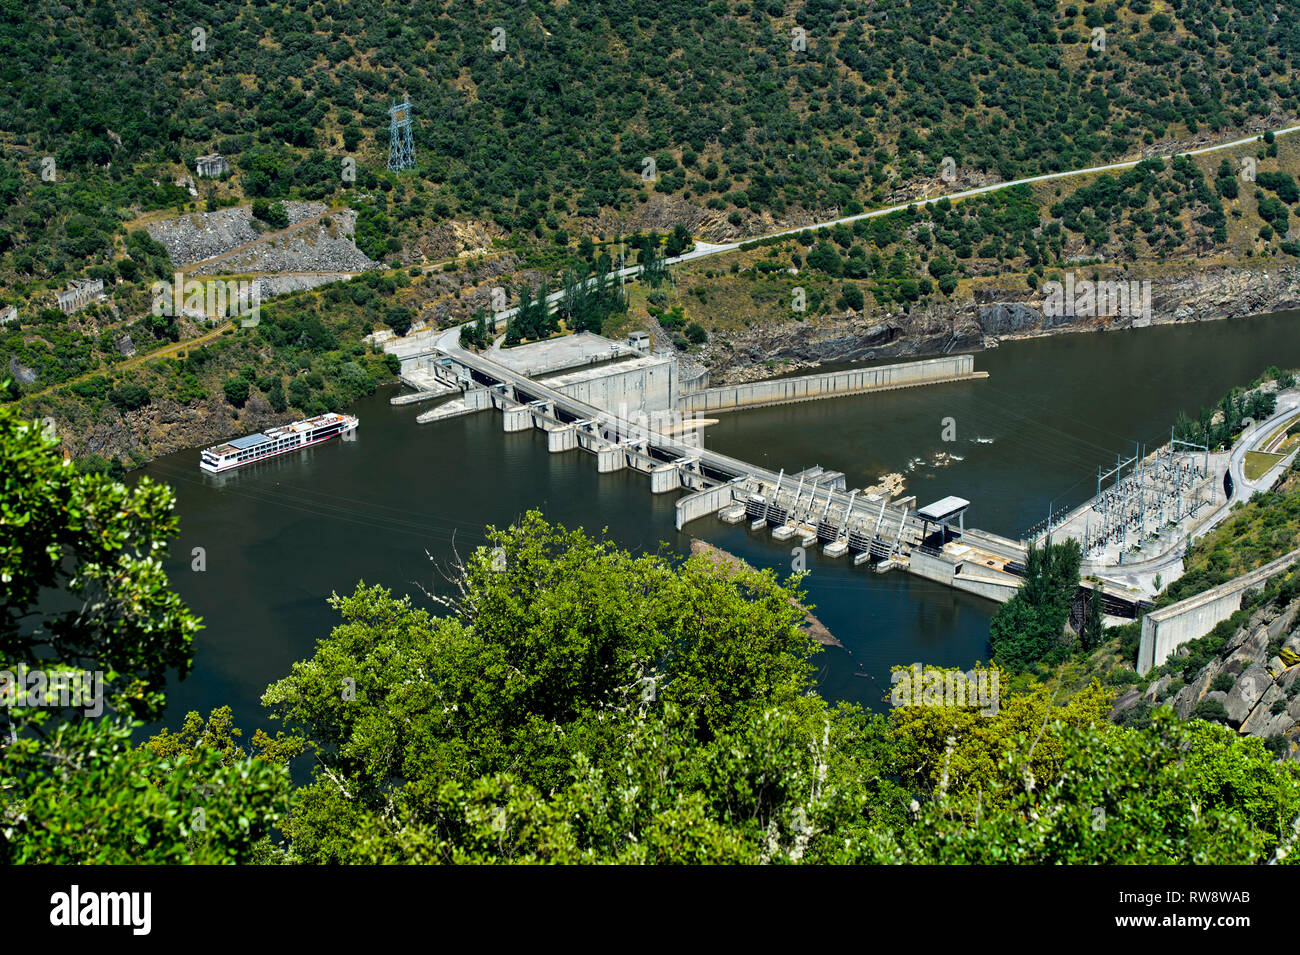 Excursion ship entering the lock of the run-of-the-river hydroelectric power plant Valeira Dam at the Douro river, Sao Joao da Pesqueira, Portugal - Stock Image